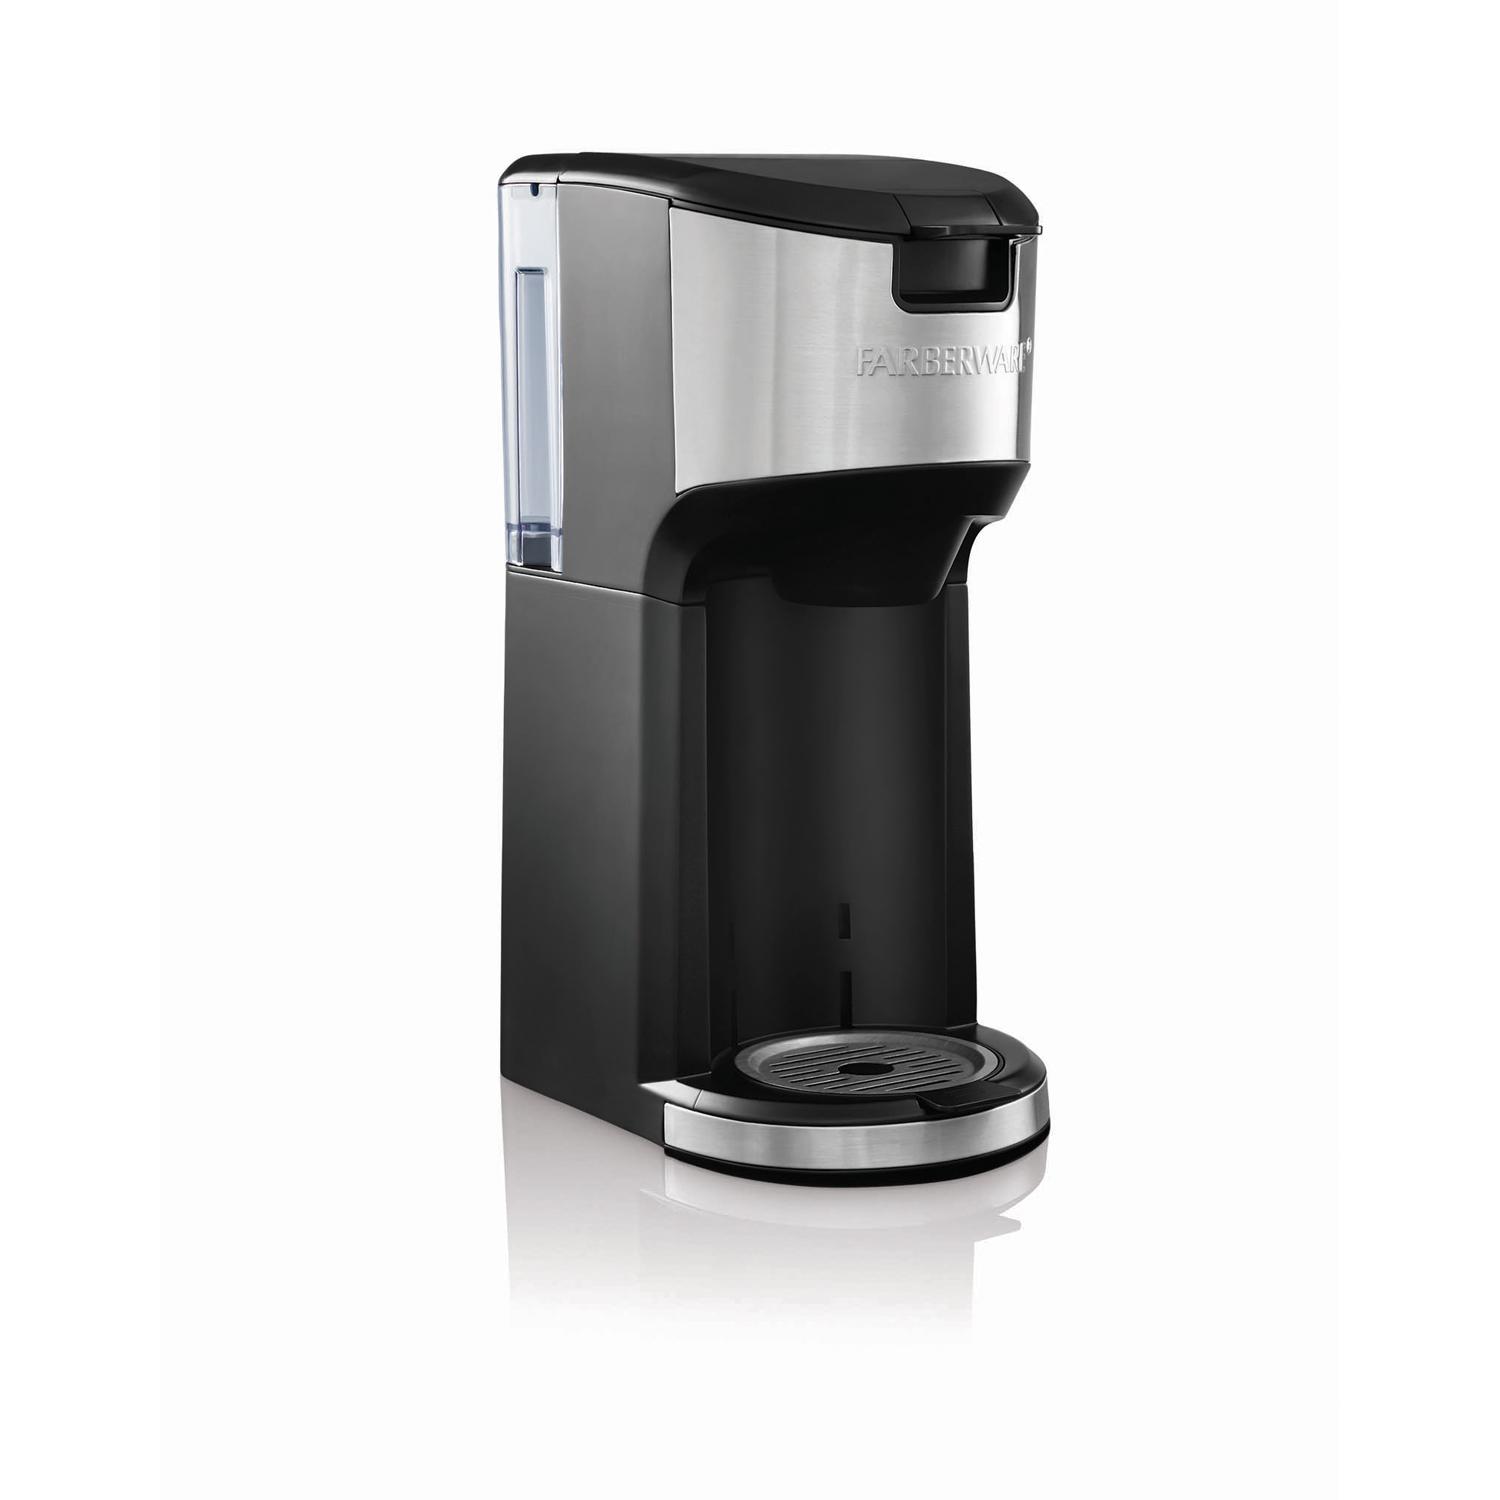 The newest addition to the Keurig single serve coffee maker family, the Keurig K-Select brewer combines sleek design and more intuitive features to help you brew your perfect cup every single time. It features four brew sizes, so you can brew 6, 8, 10, or up to 12 oz.